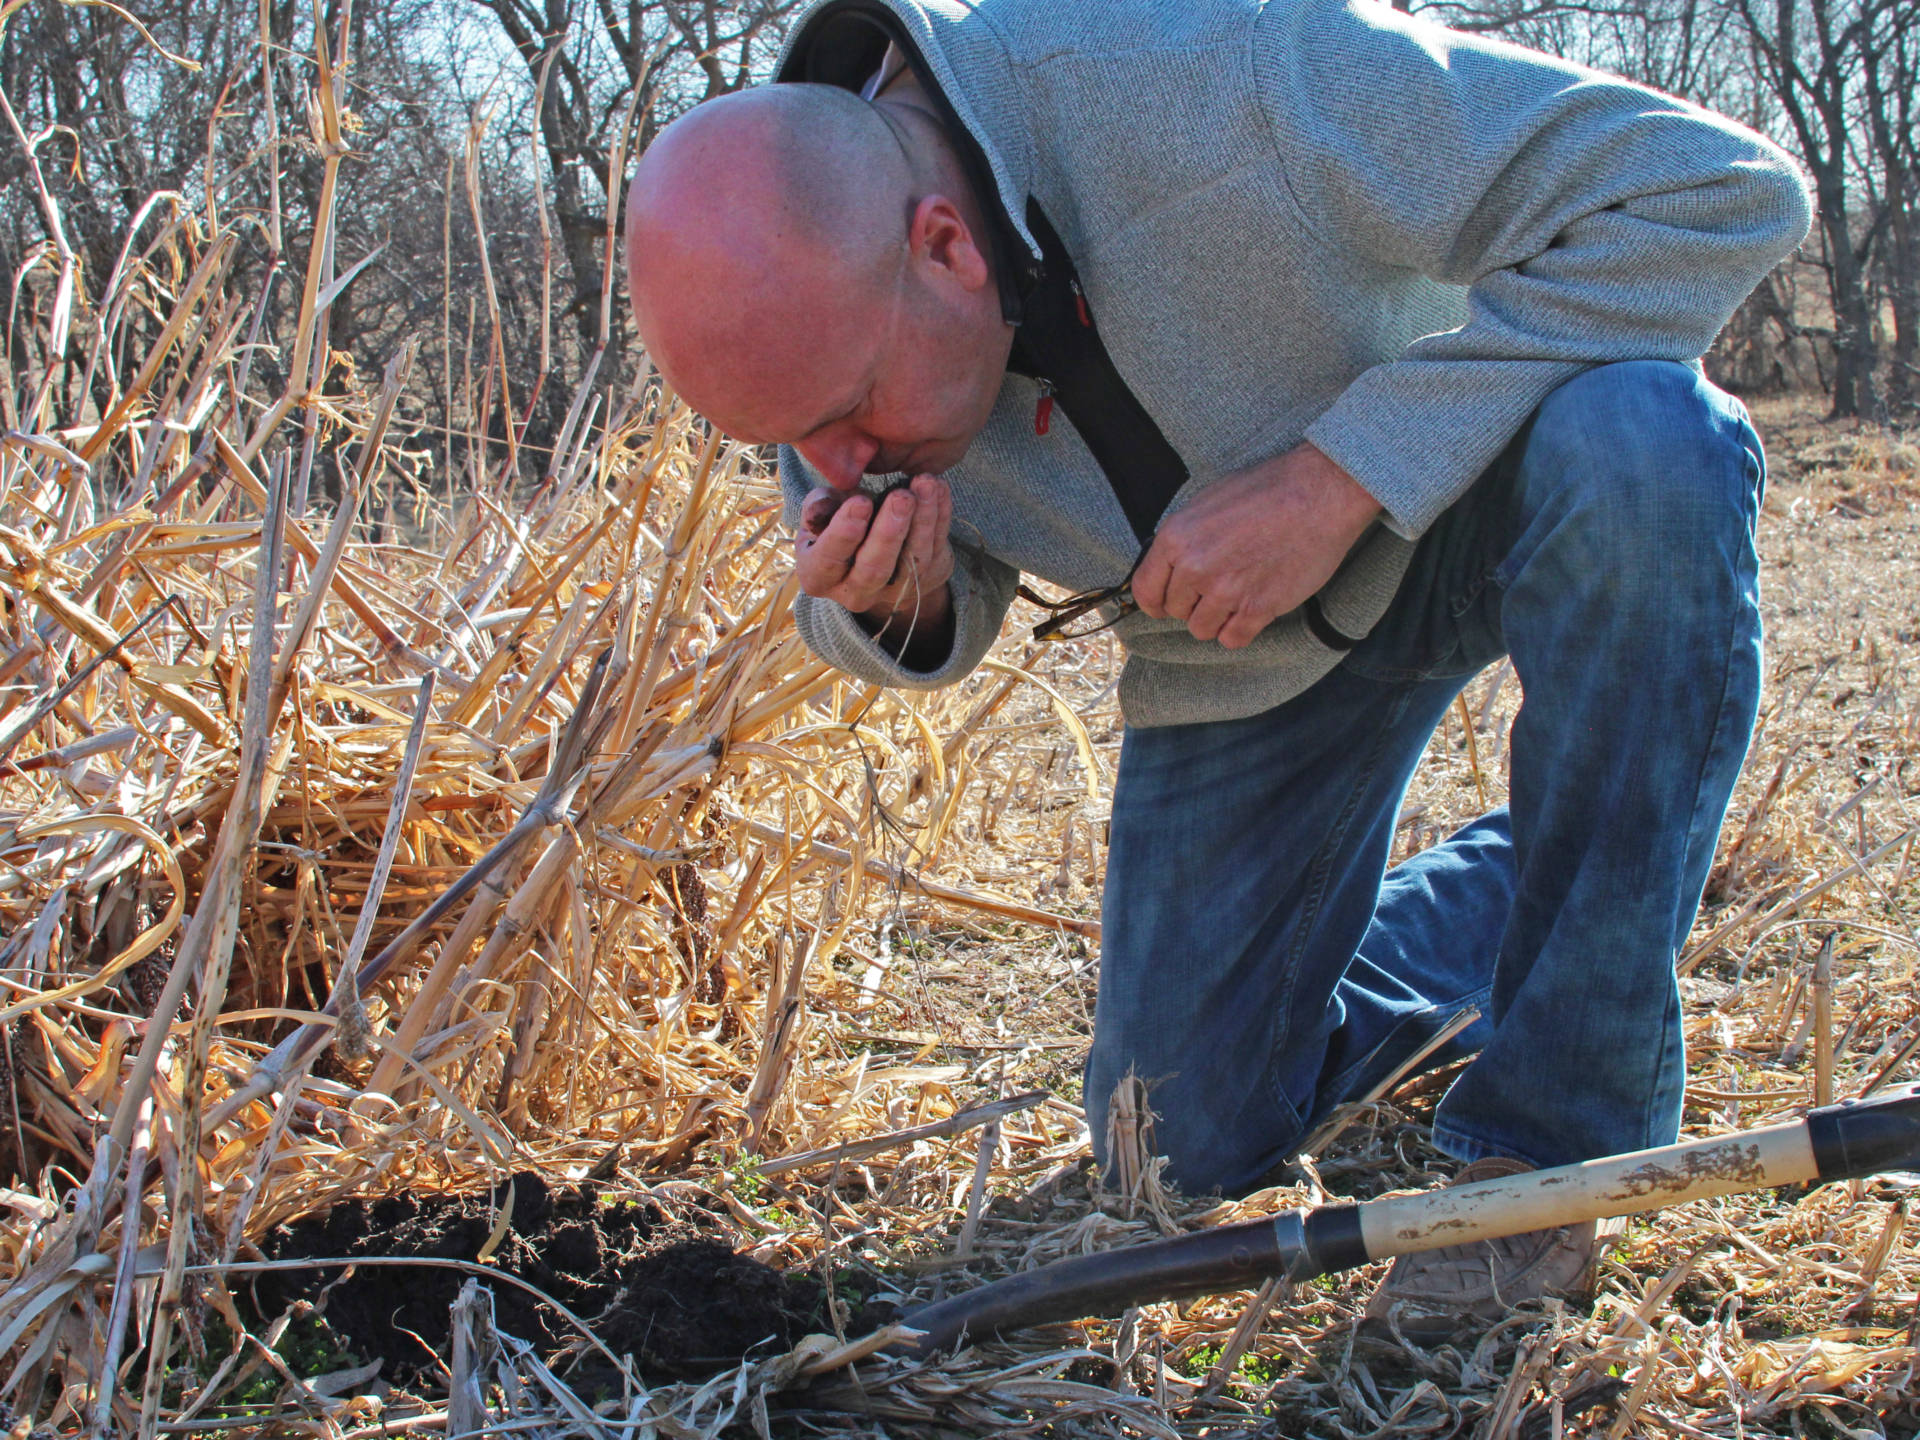 For Del Ficke, improving the soil is a spiritual quest.